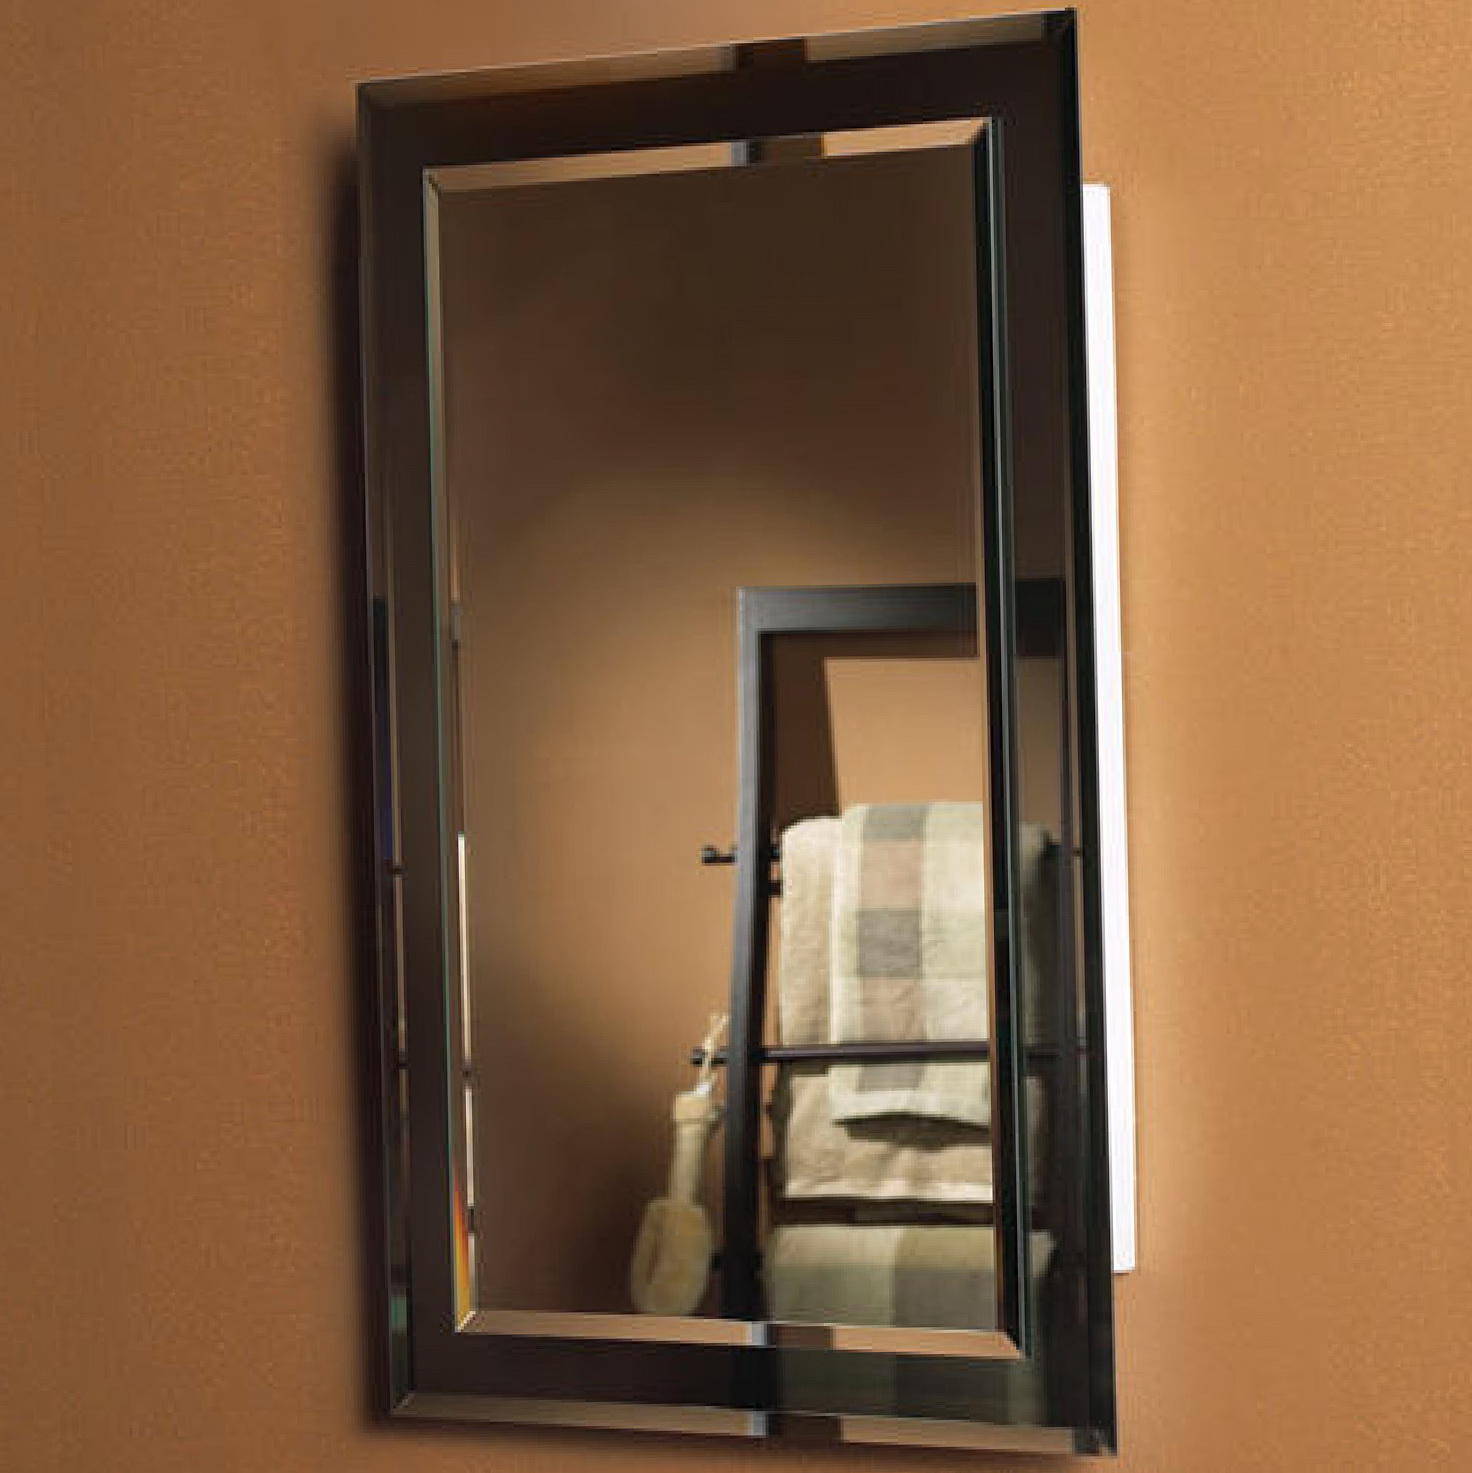 Recessed Medicine Cabinets With Mirrors Home Design Ideas